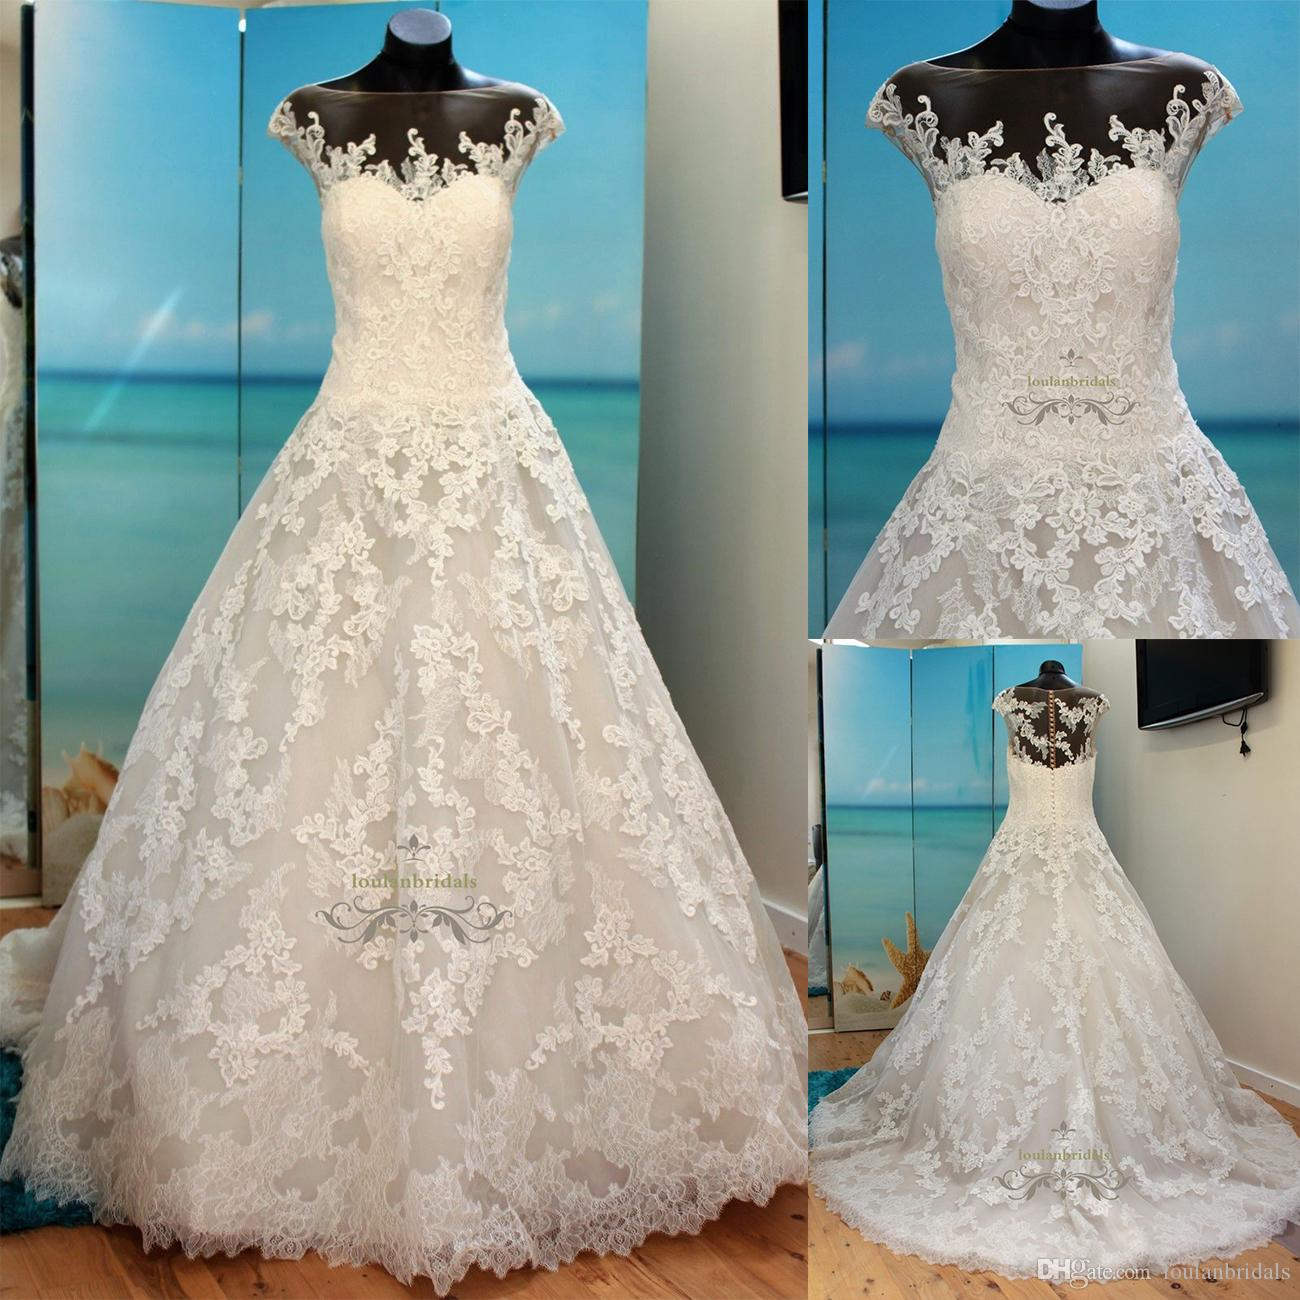 Stunning Ball Gown Style Wedding Dress Nude Sheer Illusion Neckline ...